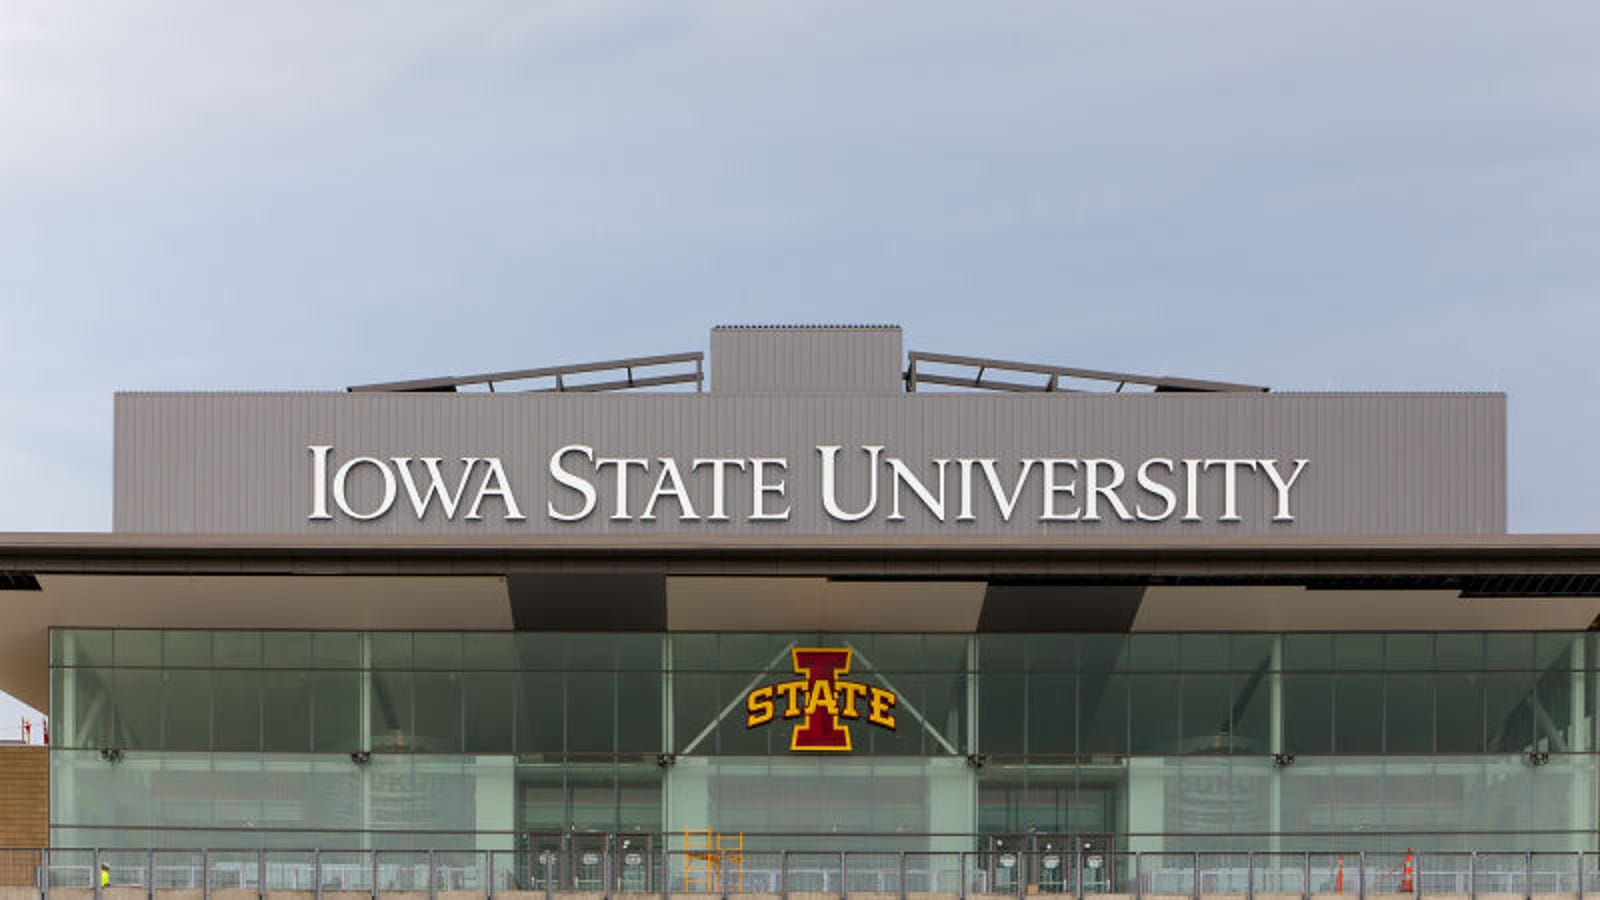 Thousands Of Students Forced To Attend Iowa State After University Sets Acceptance Rate To 140%